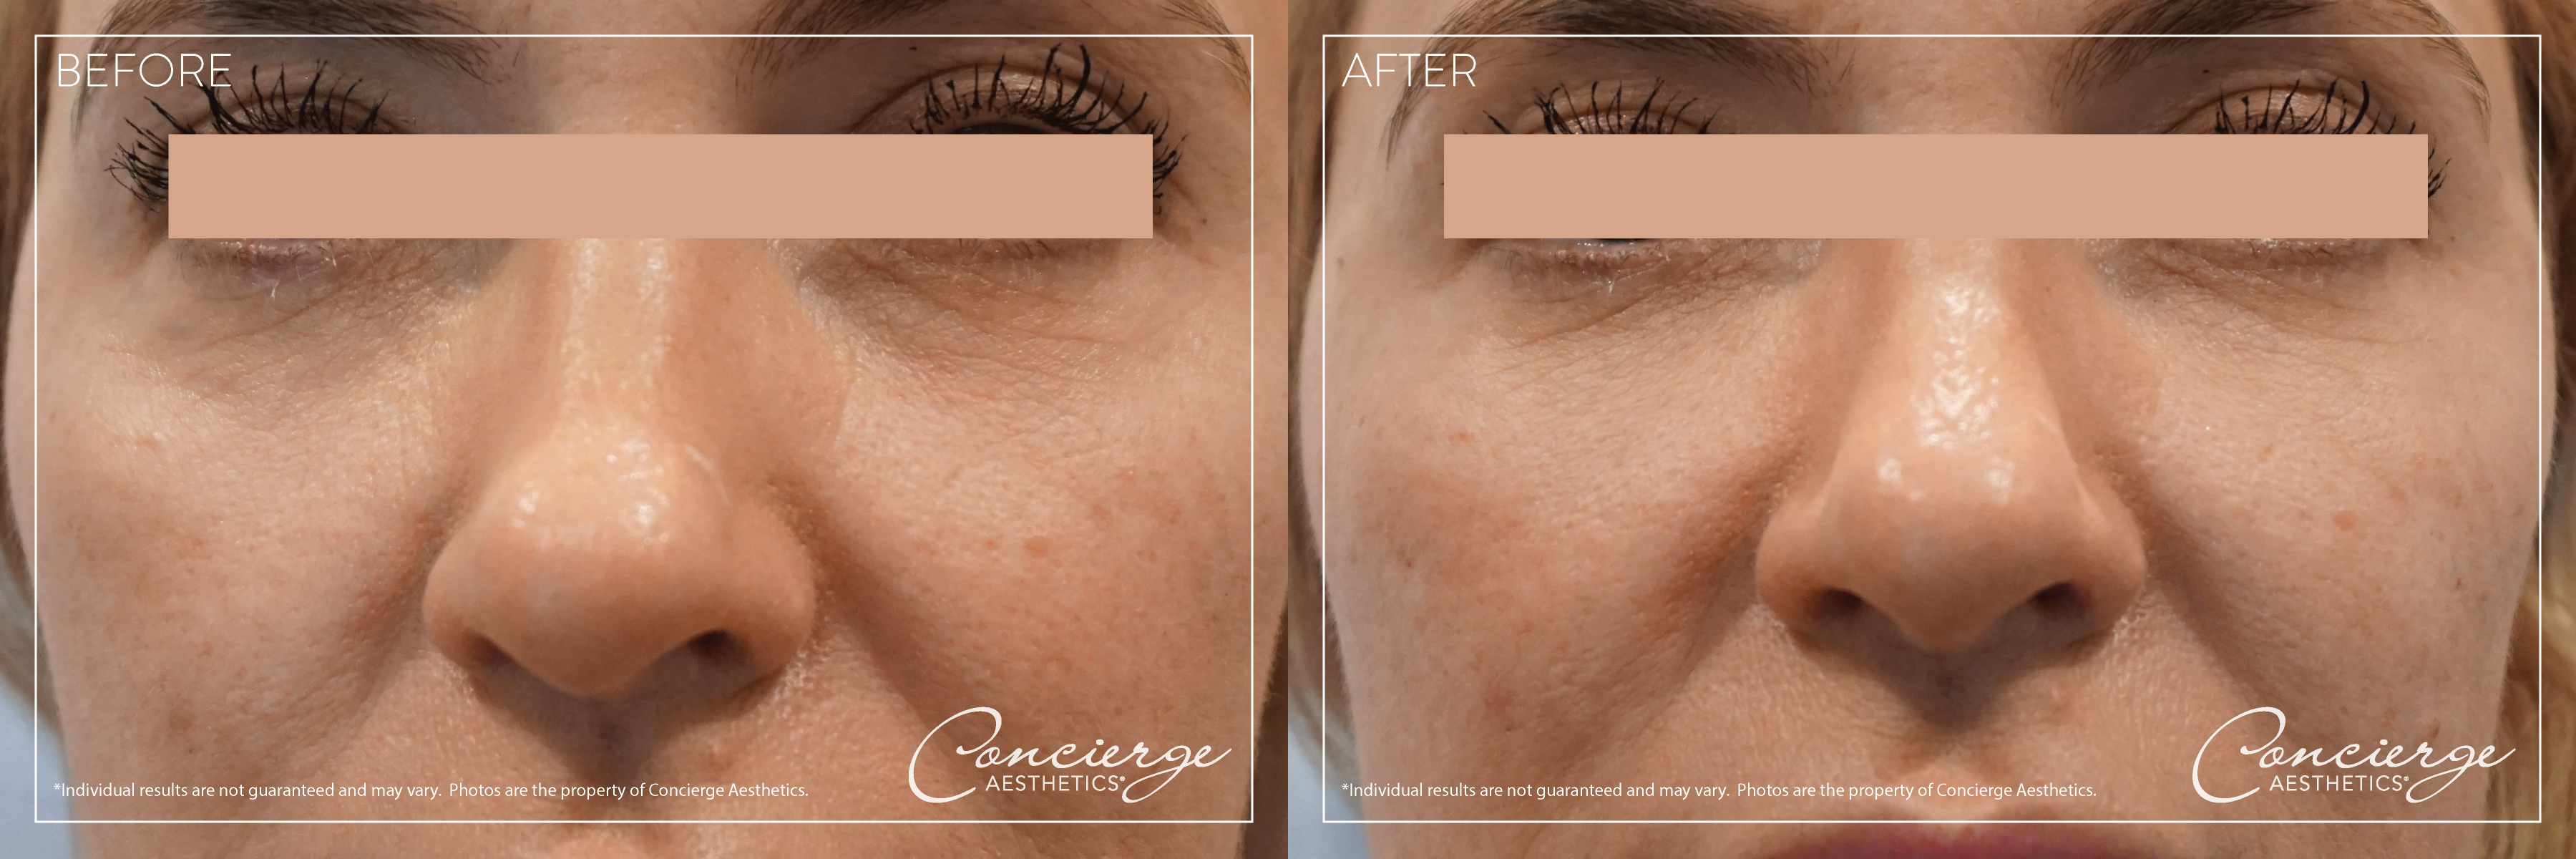 JUVÉDERM Volbella XC - Under the Eyes - Before and After